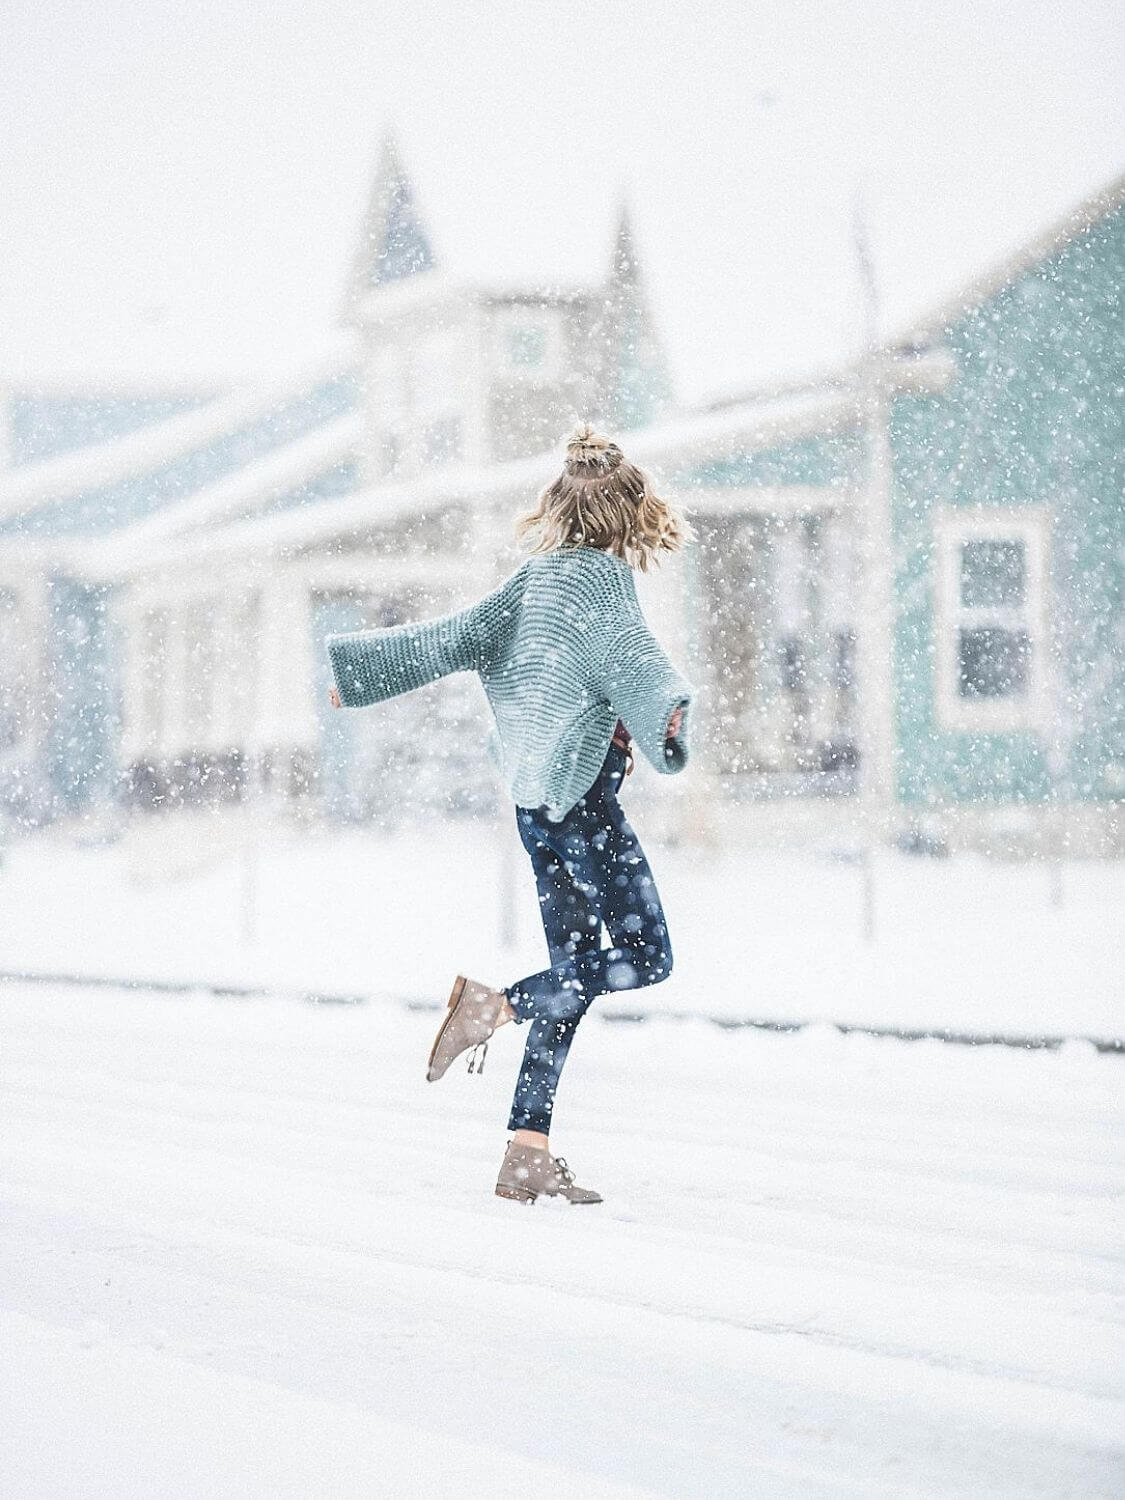 Source: somewheredevine.com // Winter can be tough, but a peaceful snowfall can turn a cold, harsh day into a magical winter wonderland! Here's why I can't deny the magic of snow. #winterwonderland #winter #snow #happiness #gratitude